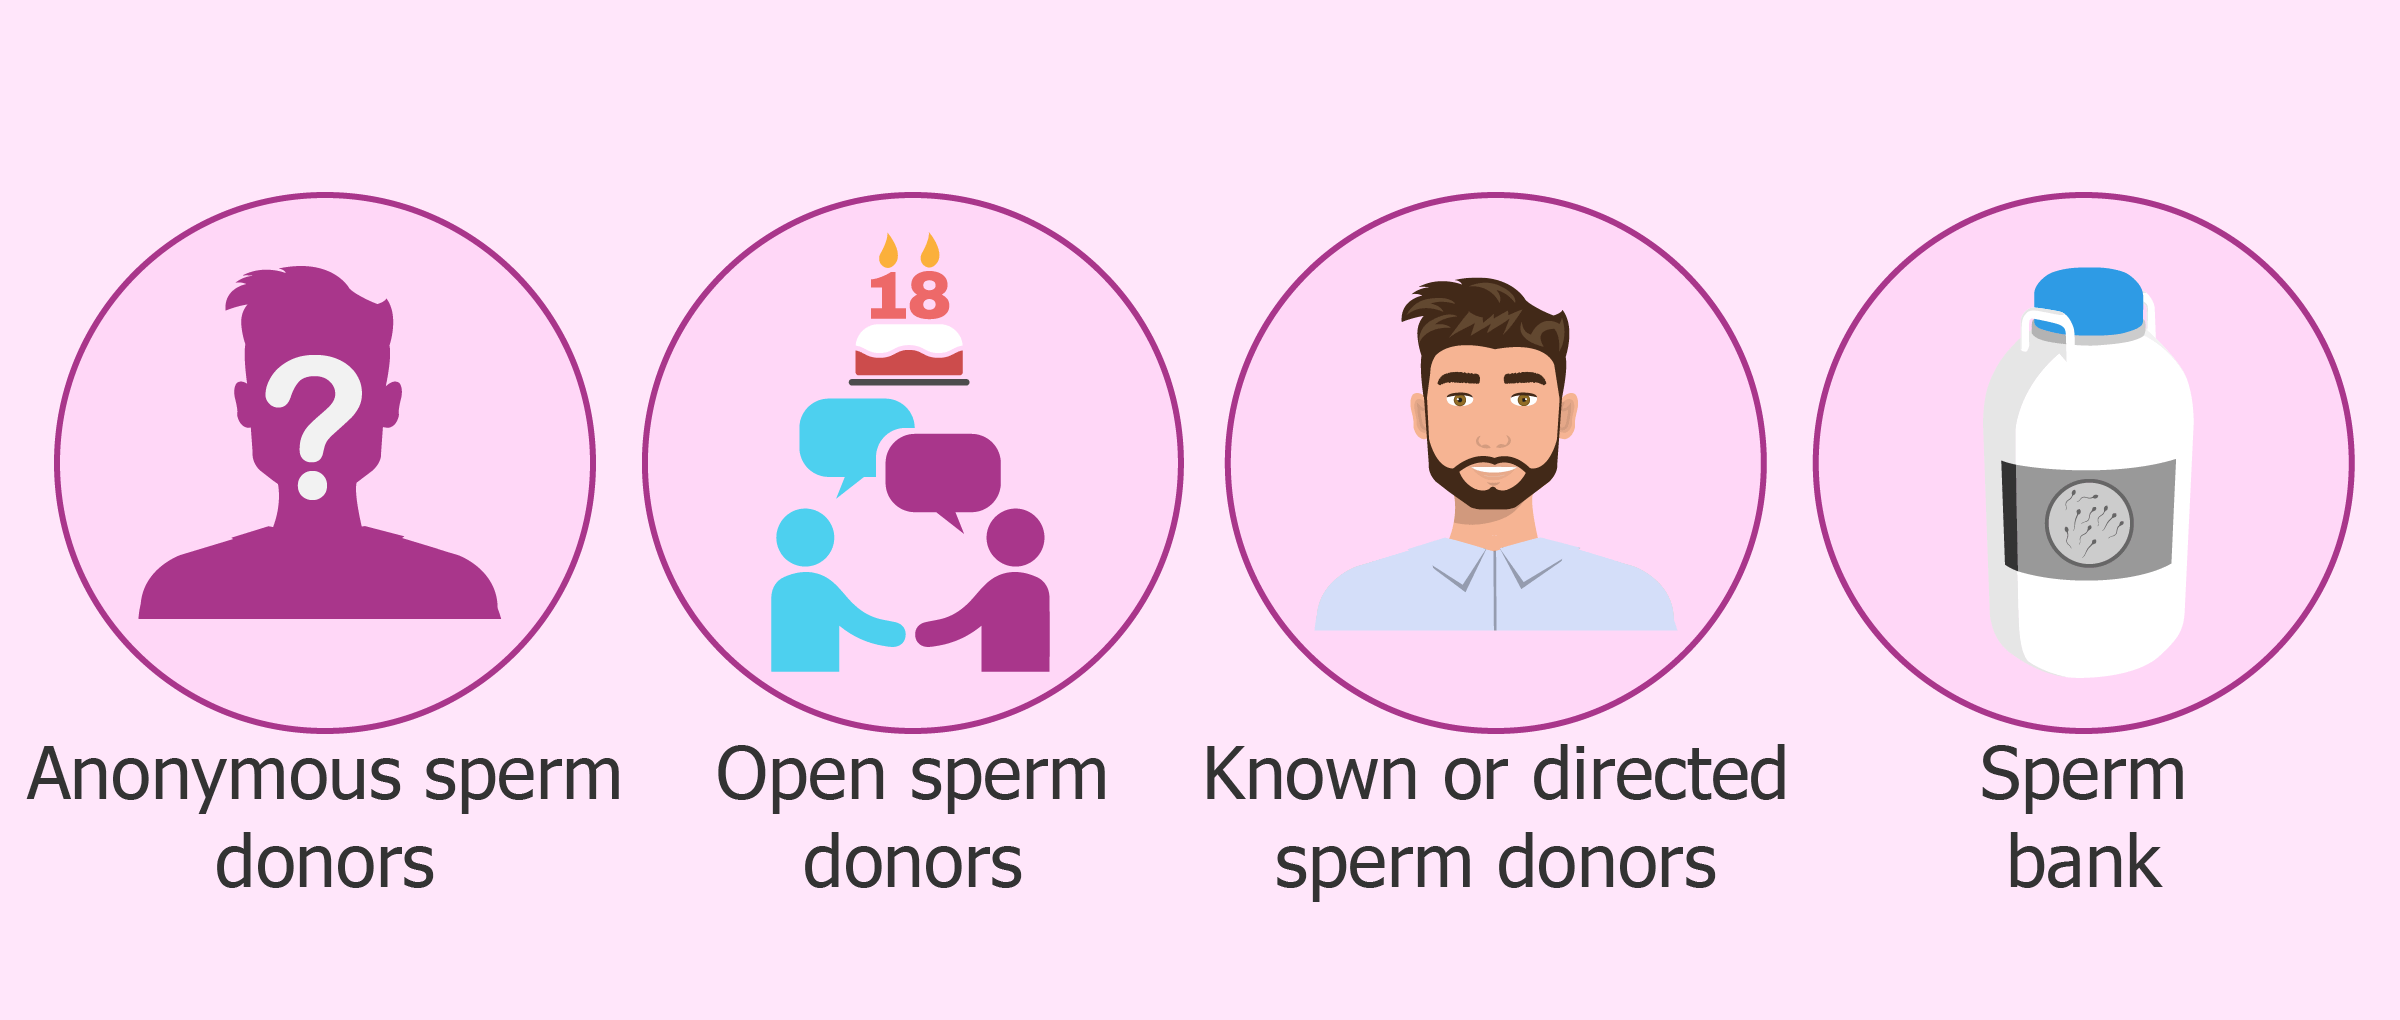 Think, Sperm donors donate at free will consider, that